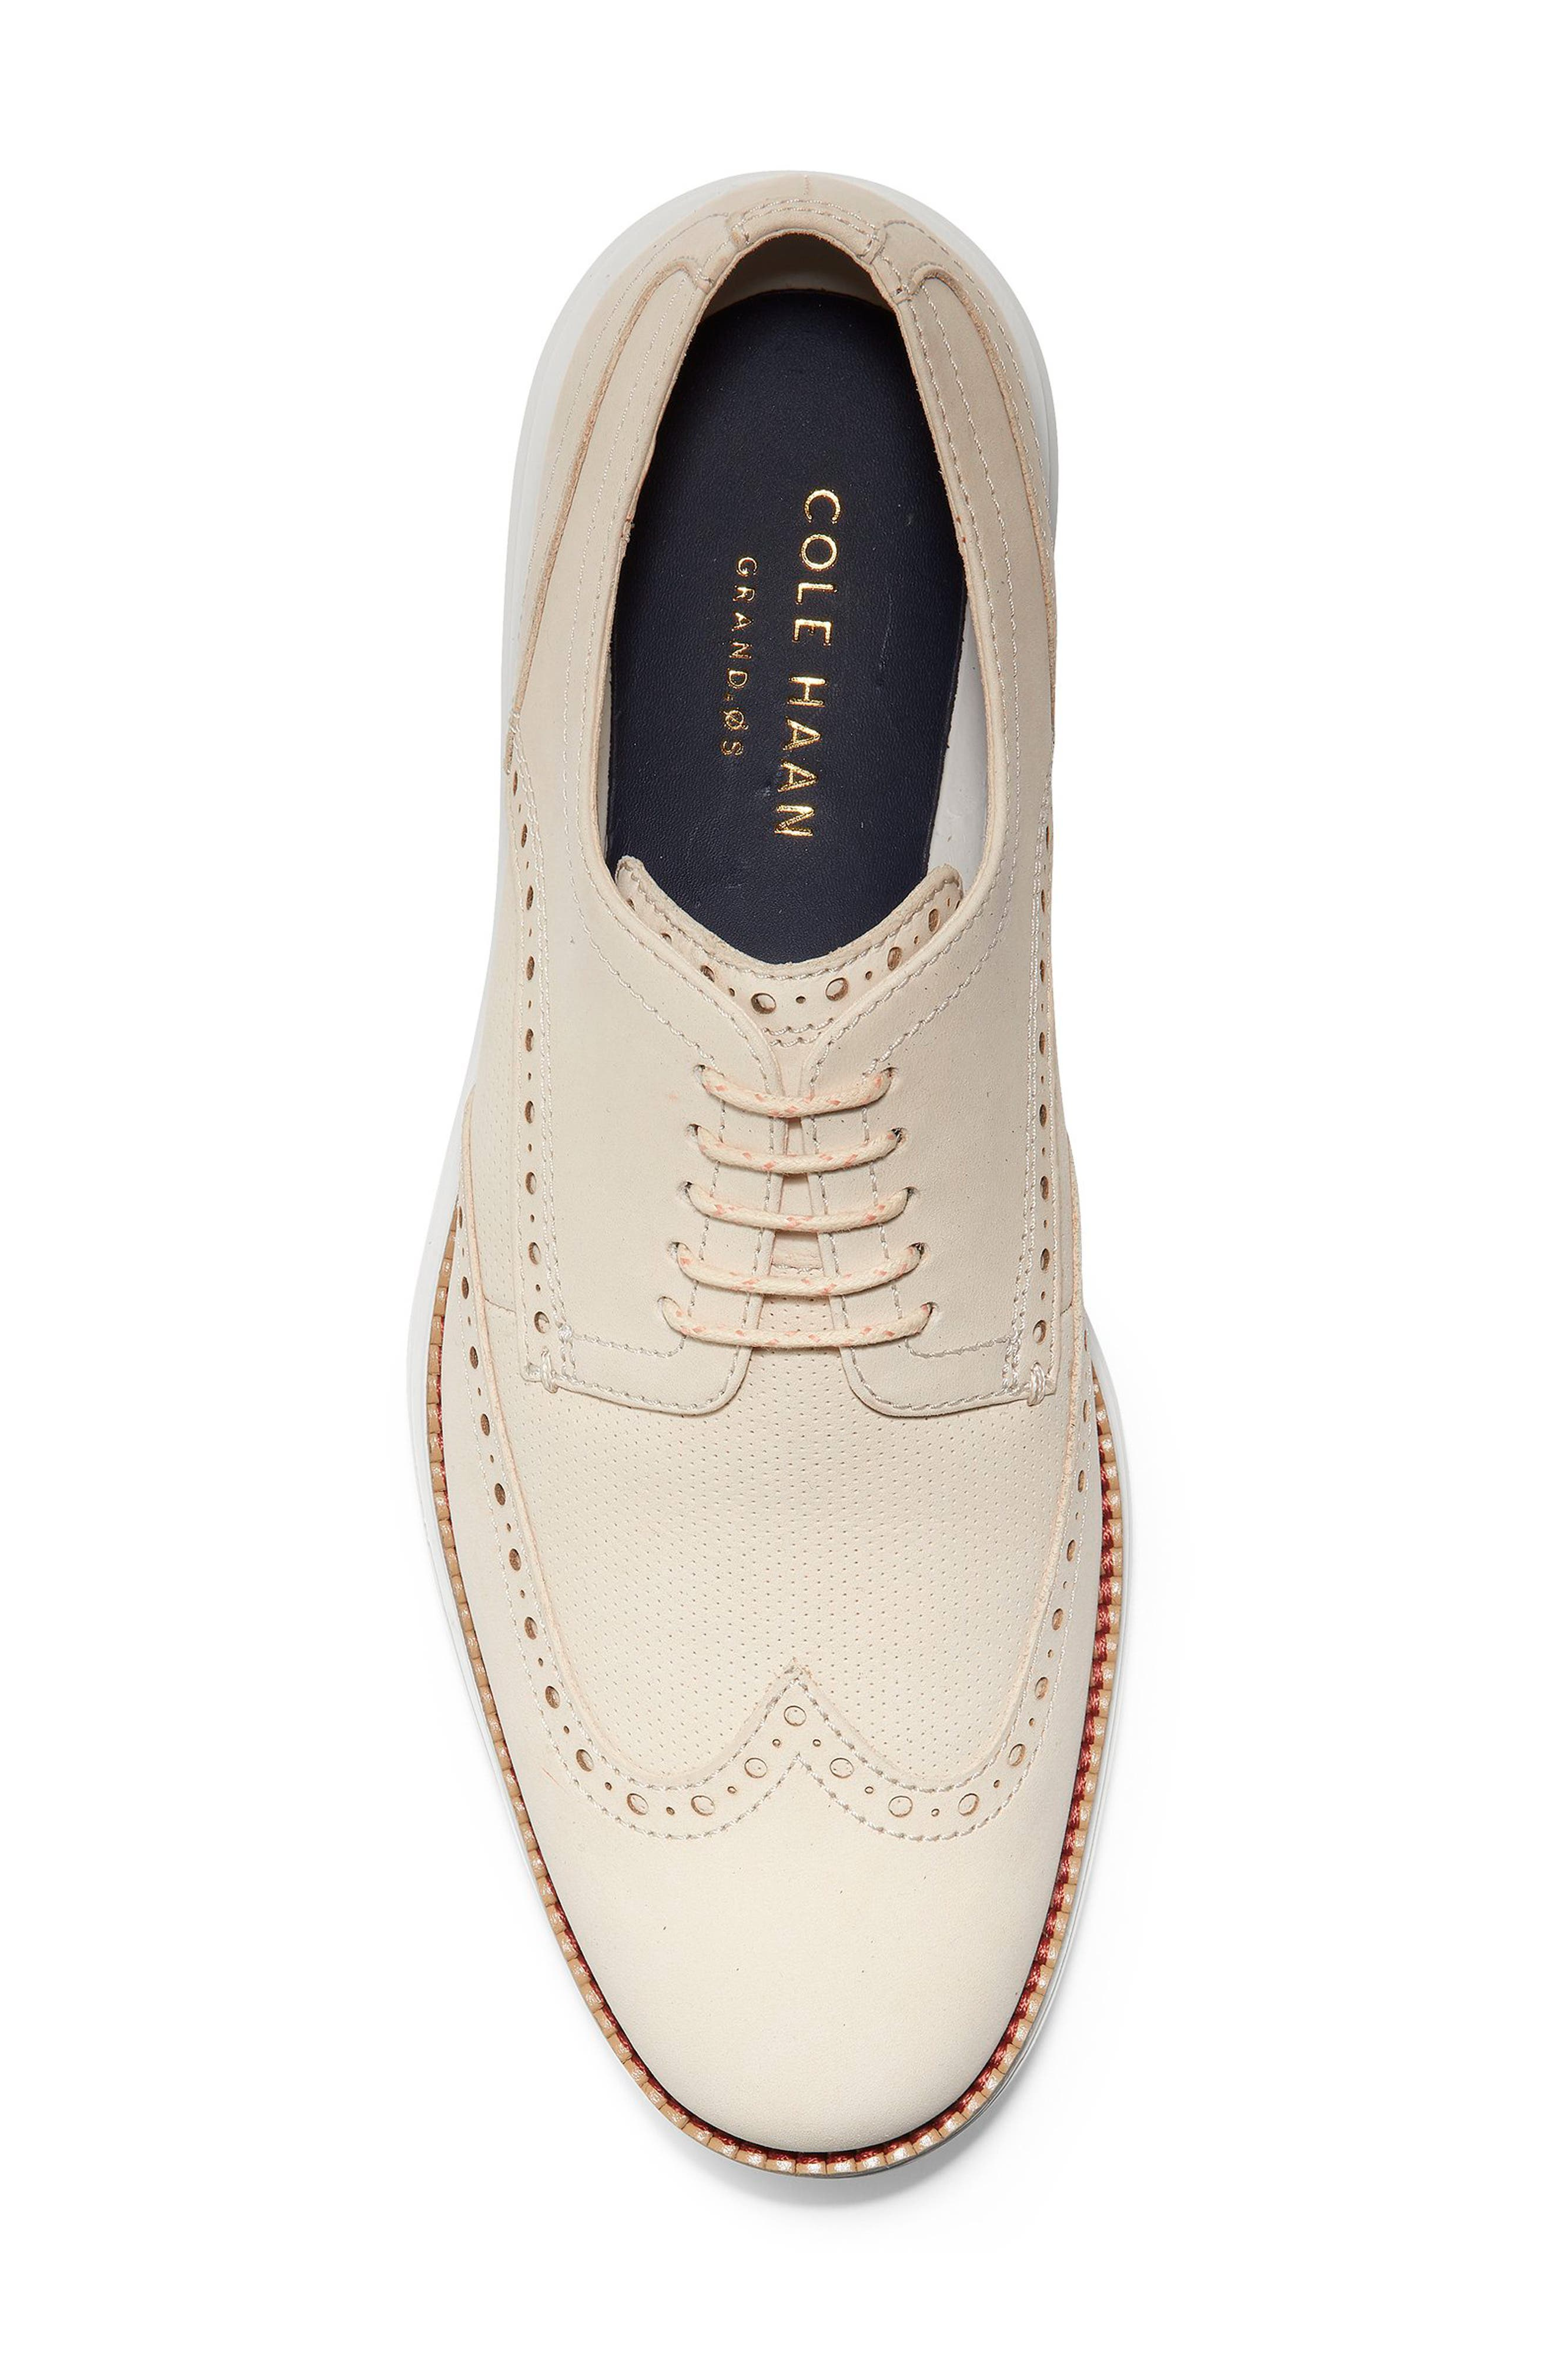 COLE HAAN, Original Grand Wingtip, Alternate thumbnail 5, color, SAND/ OPTIC WHITE NUBUCK